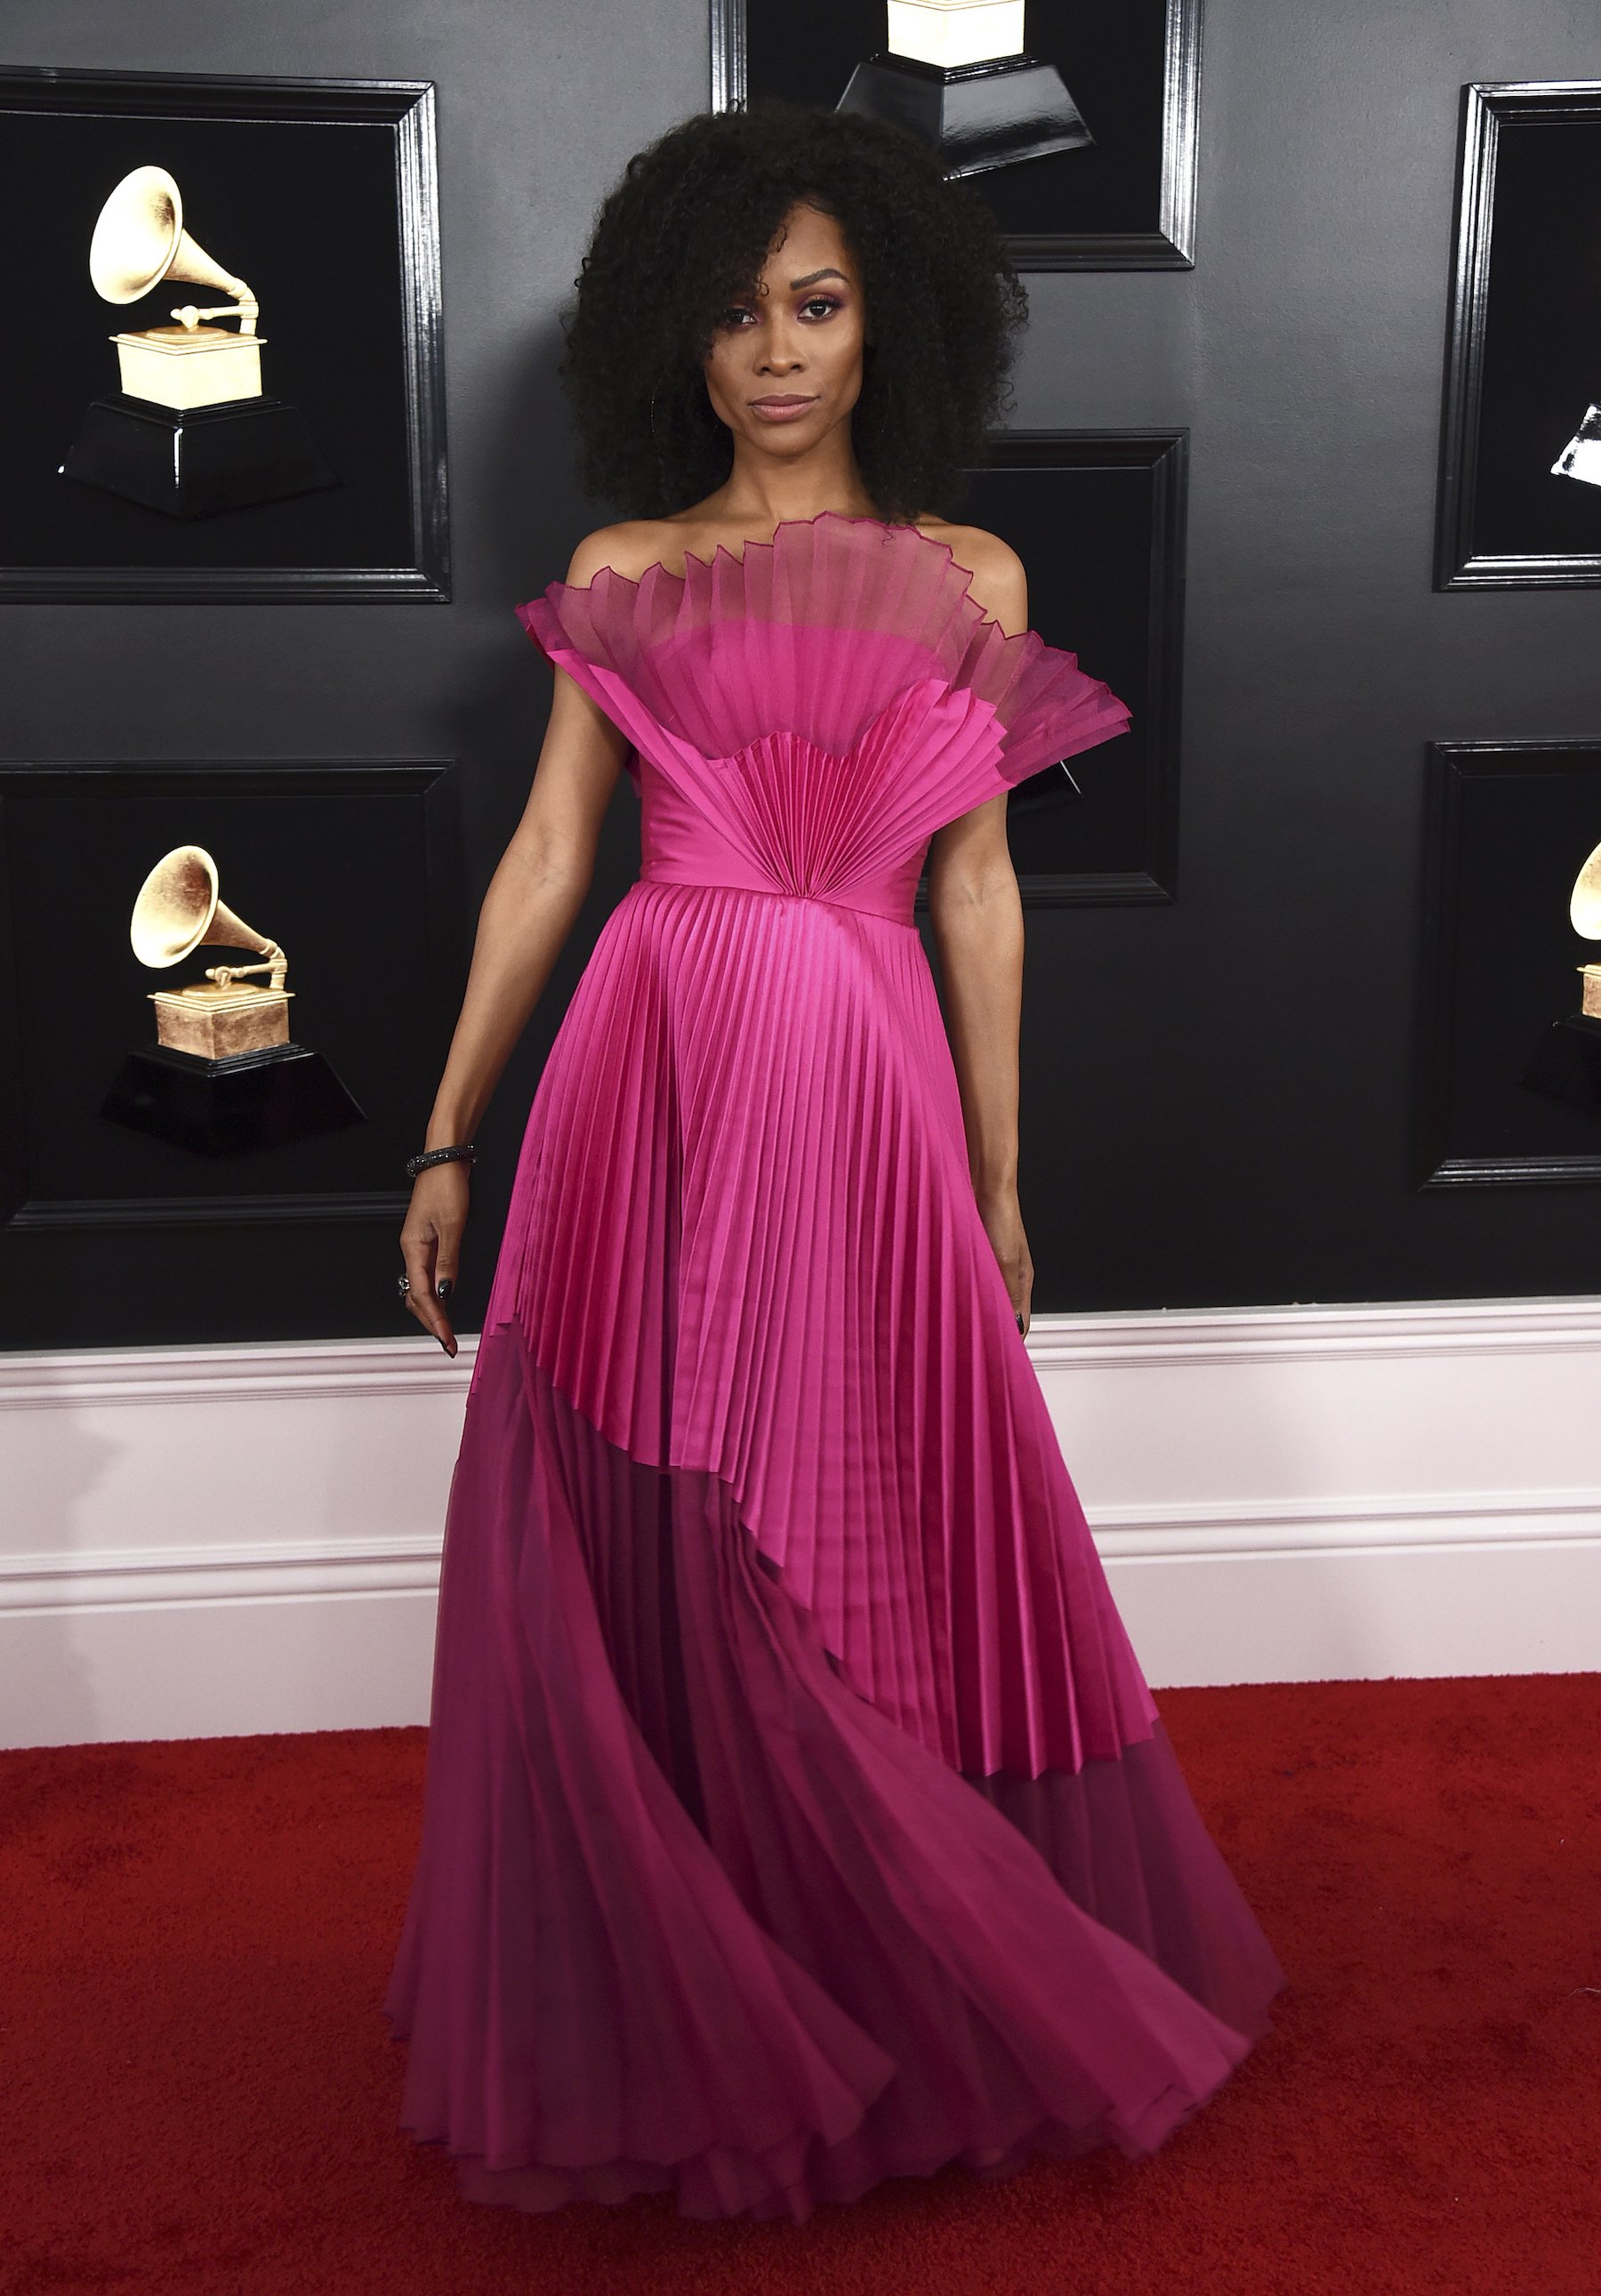 "<div class=""meta image-caption""><div class=""origin-logo origin-image ap""><span>AP</span></div><span class=""caption-text"">Zuri Hall arrives at the 61st annual Grammy Awards at the Staples Center on Sunday, Feb. 10, 2019, in Los Angeles. (Jordan Strauss/Invision/AP)</span></div>"